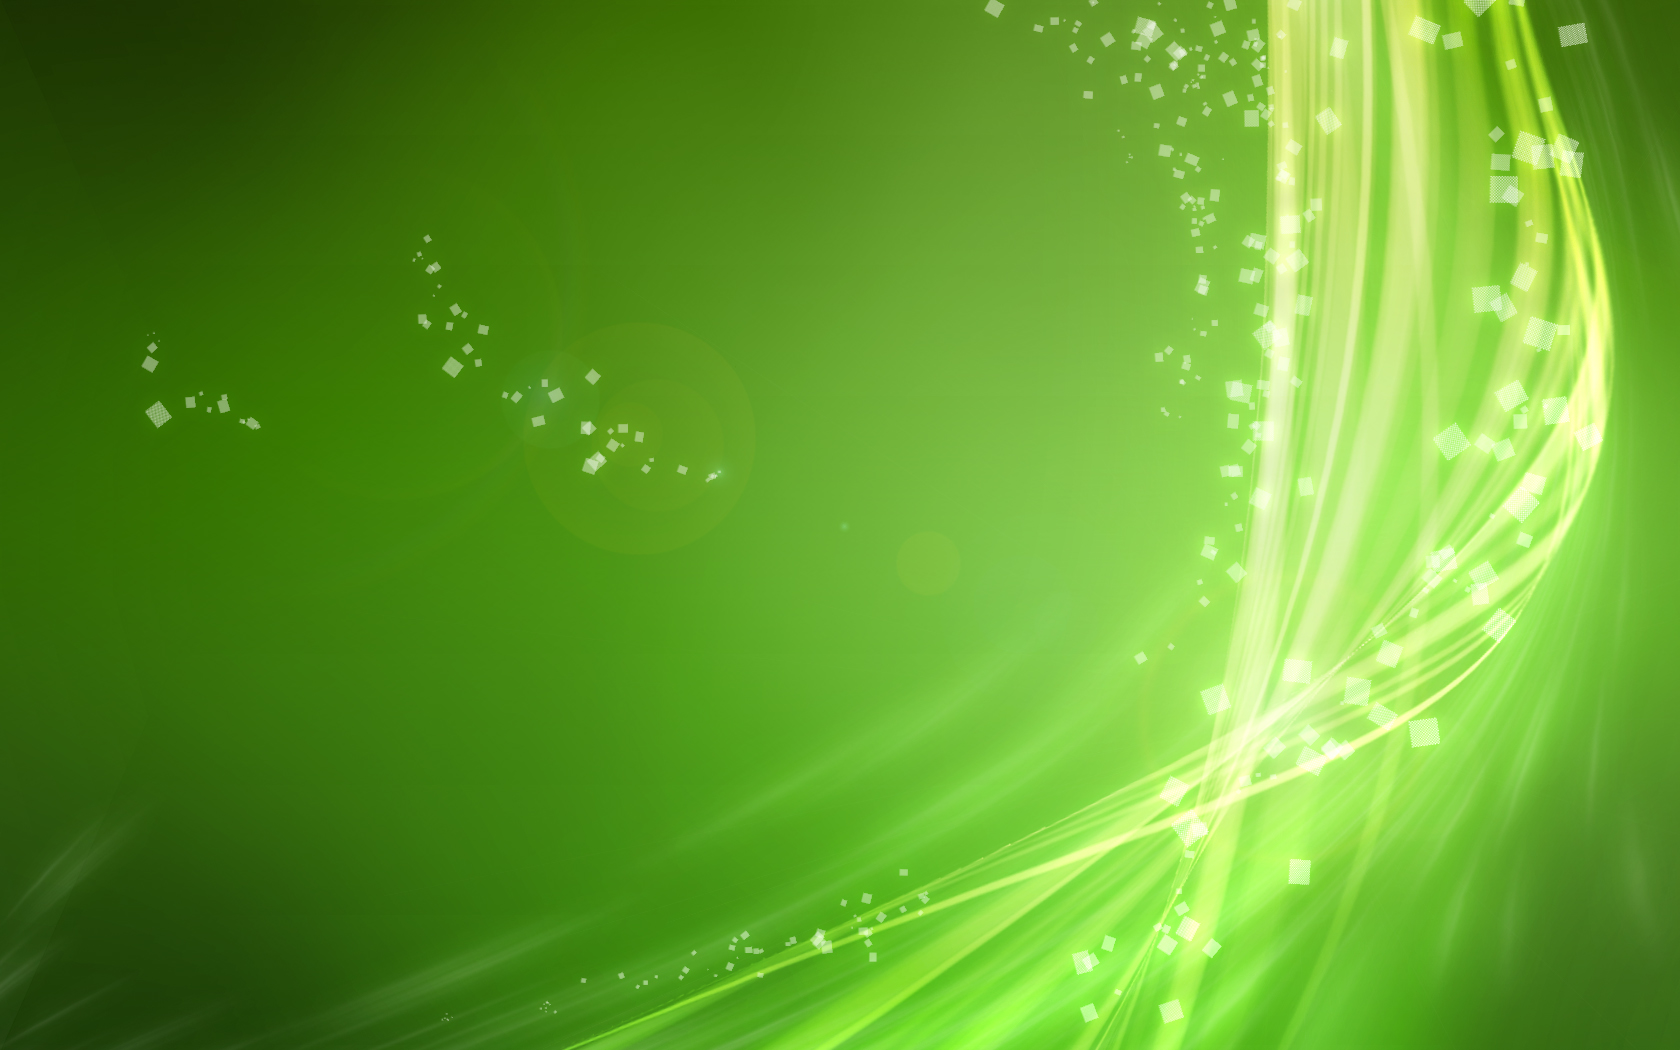 Abstract Wallpaper Green Hd